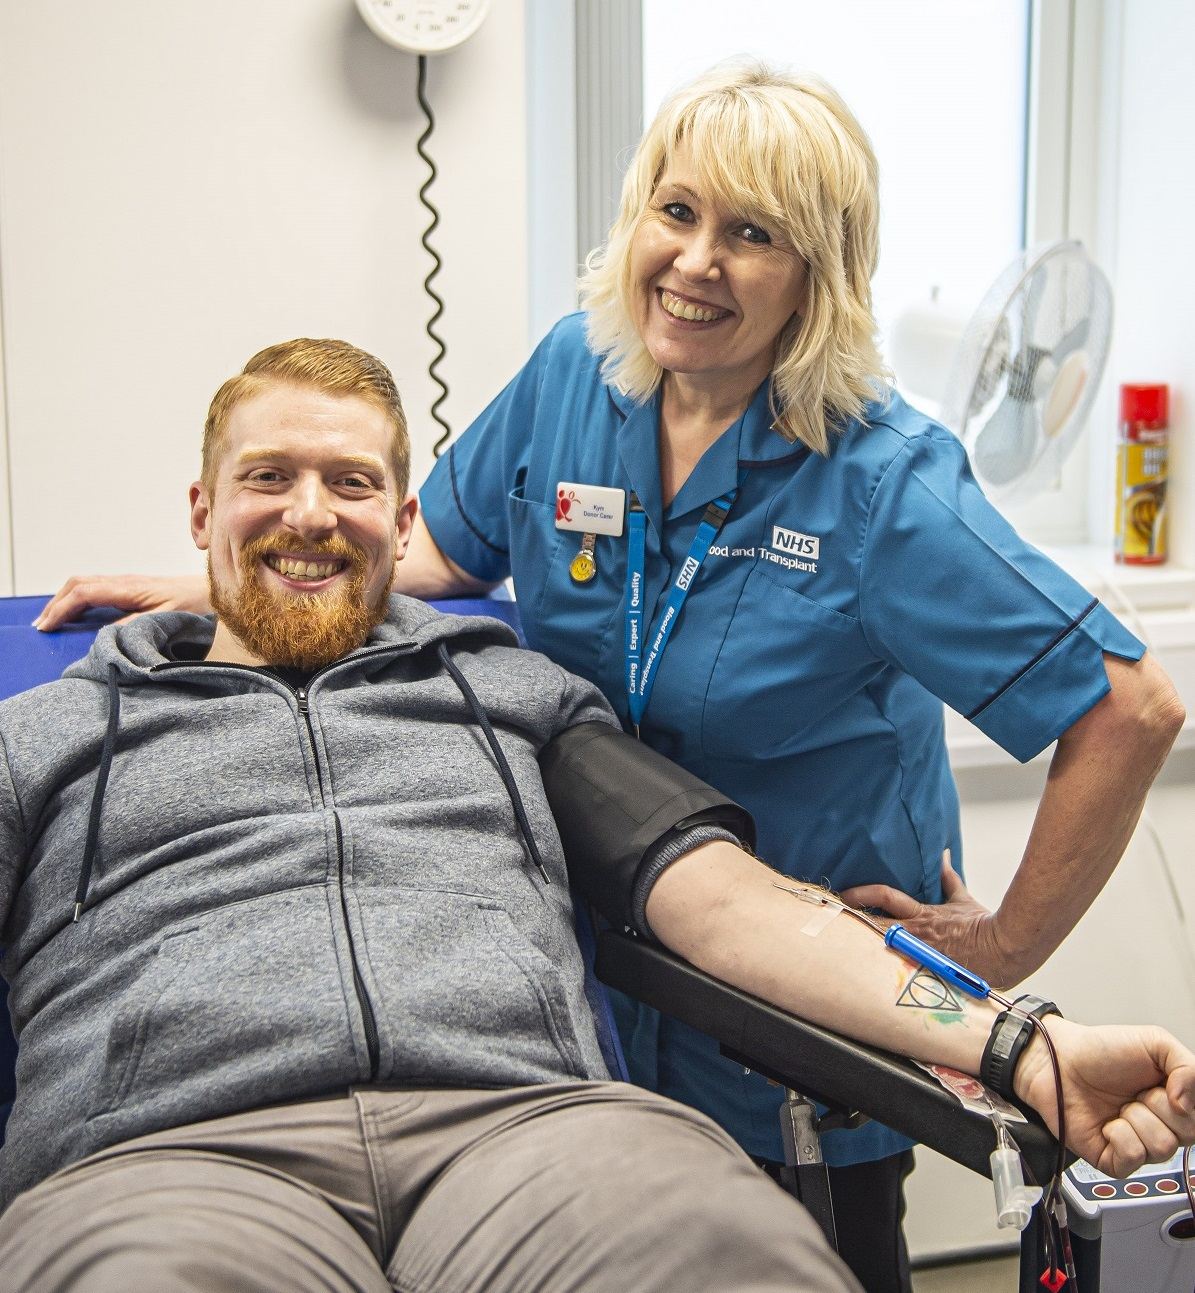 David Pulman and a Blood Donation nurse pose for a photo as David donates